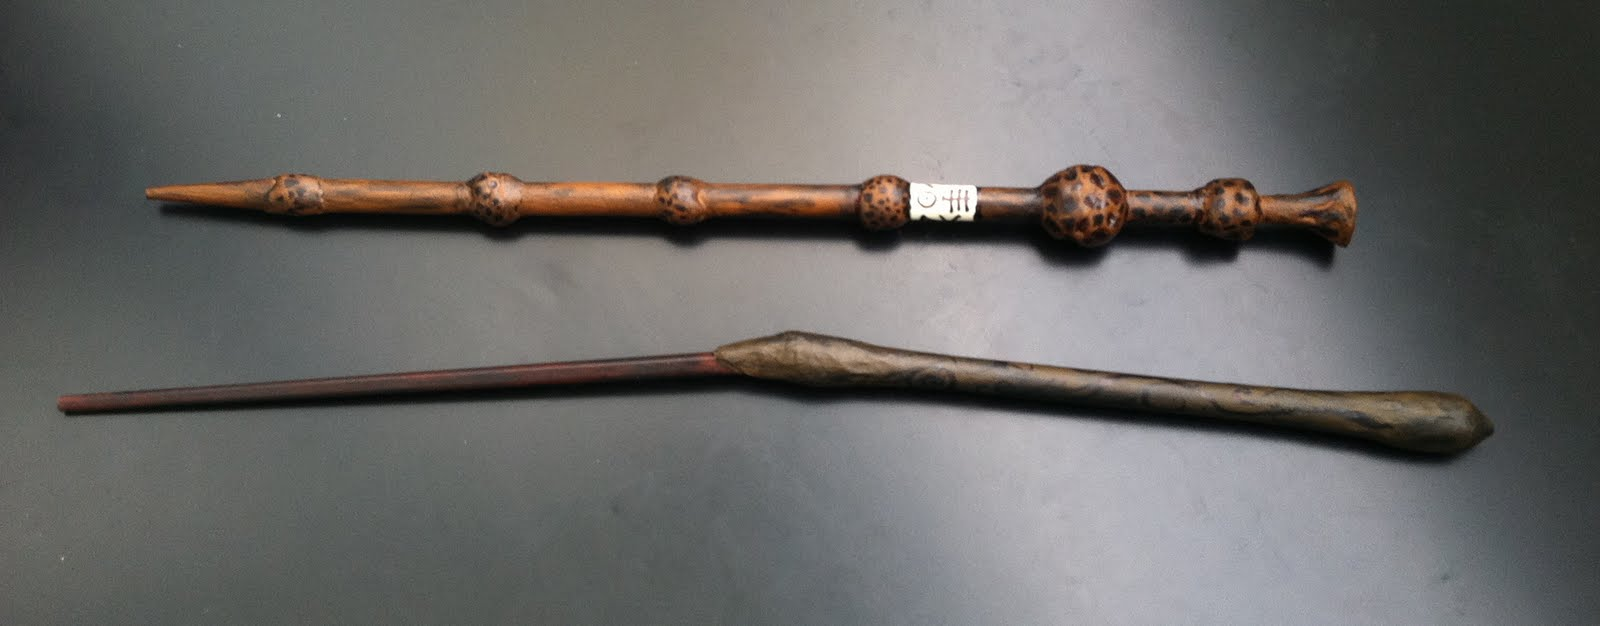 Cation designs pretending to be ollivander for Elder wand made of